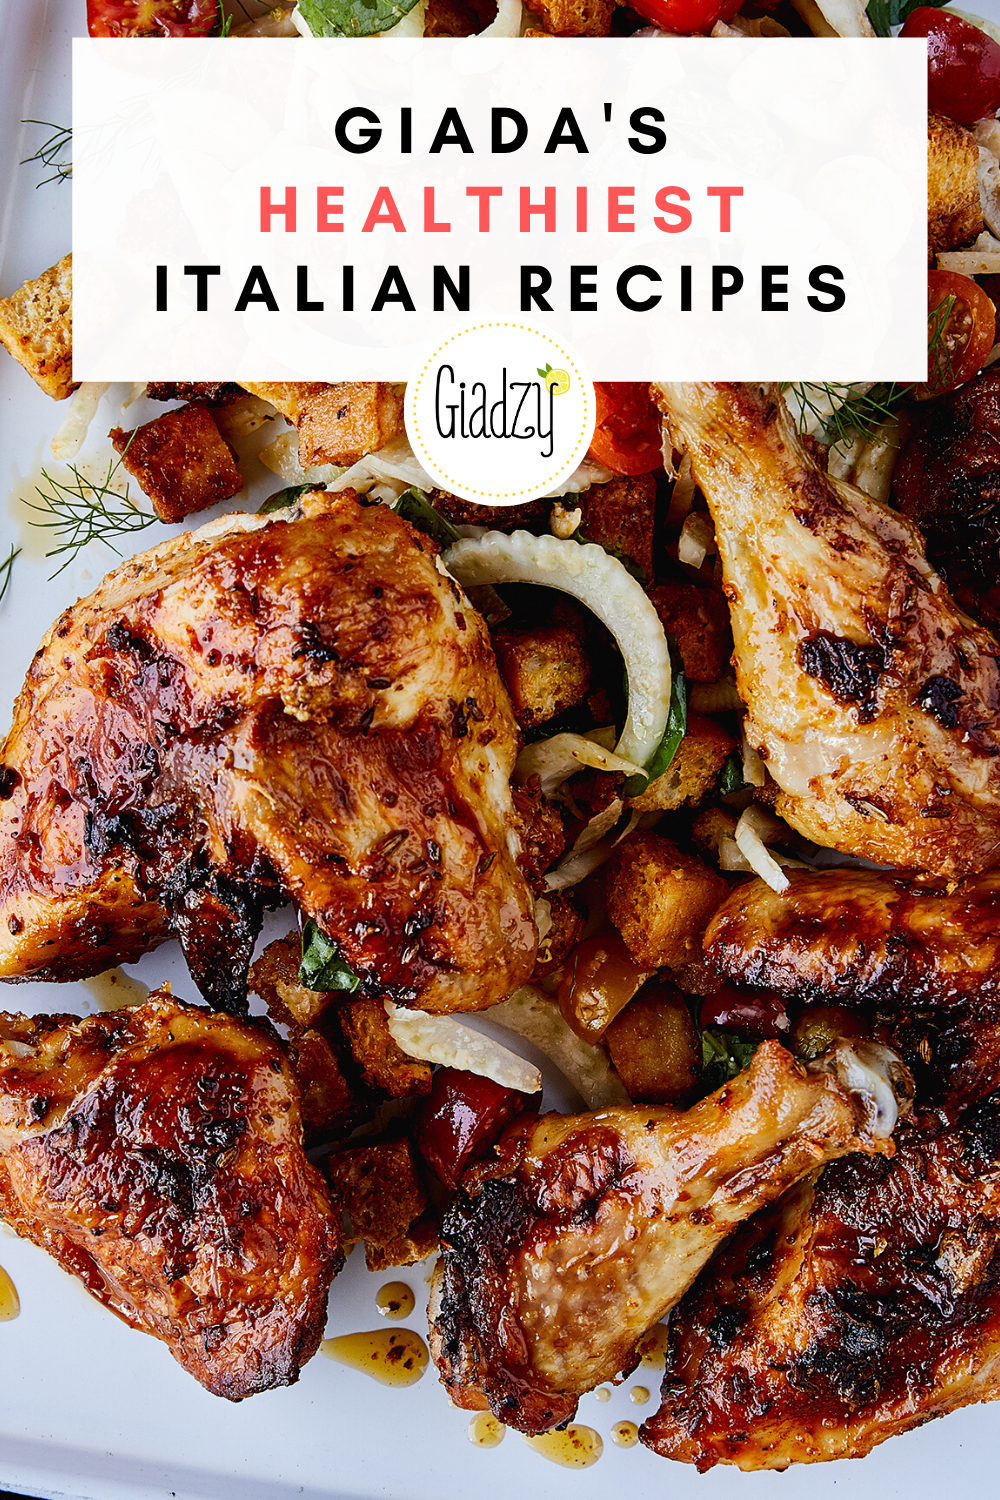 Photo of Giada's Healthiest Italian Recipes